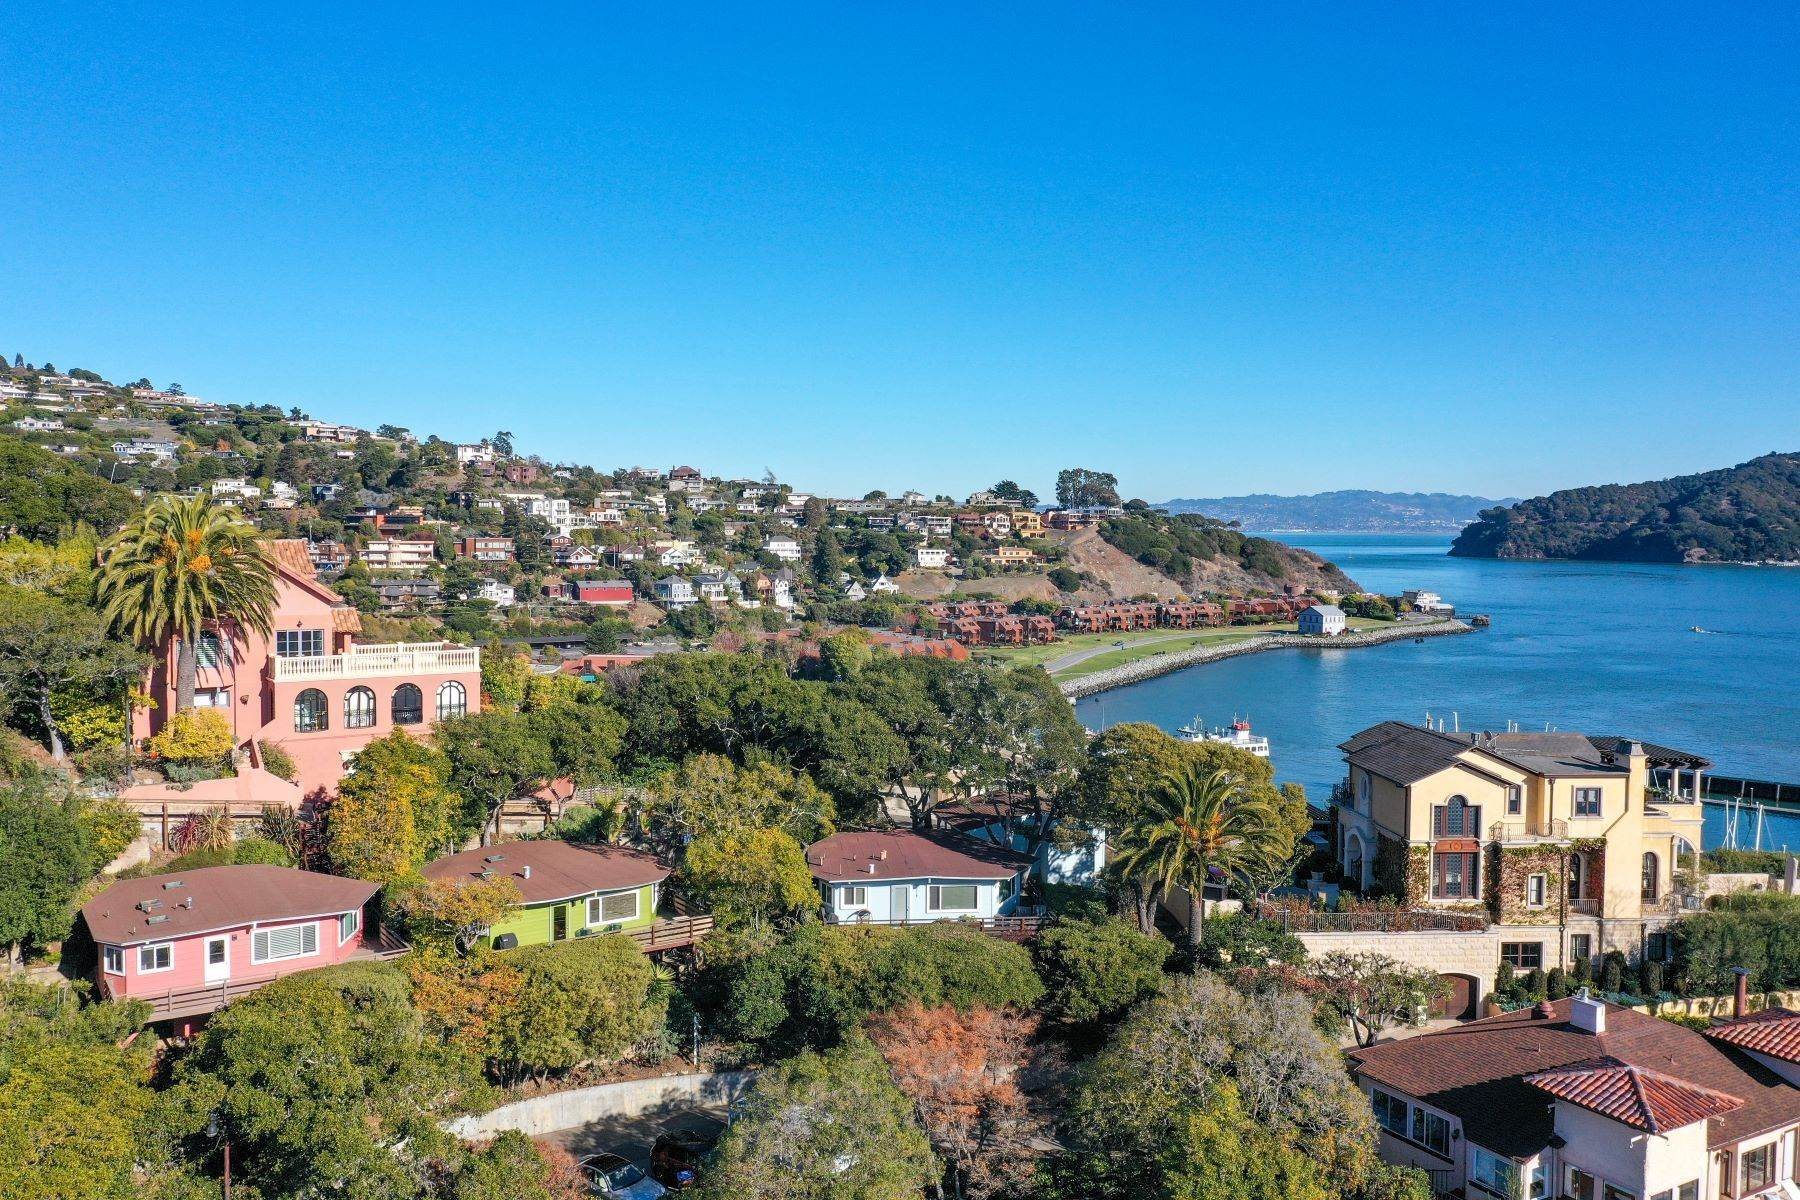 Property for Sale at Corinthian Island Cottages 49 Alcatraz Avenue Belvedere, California 94920 United States